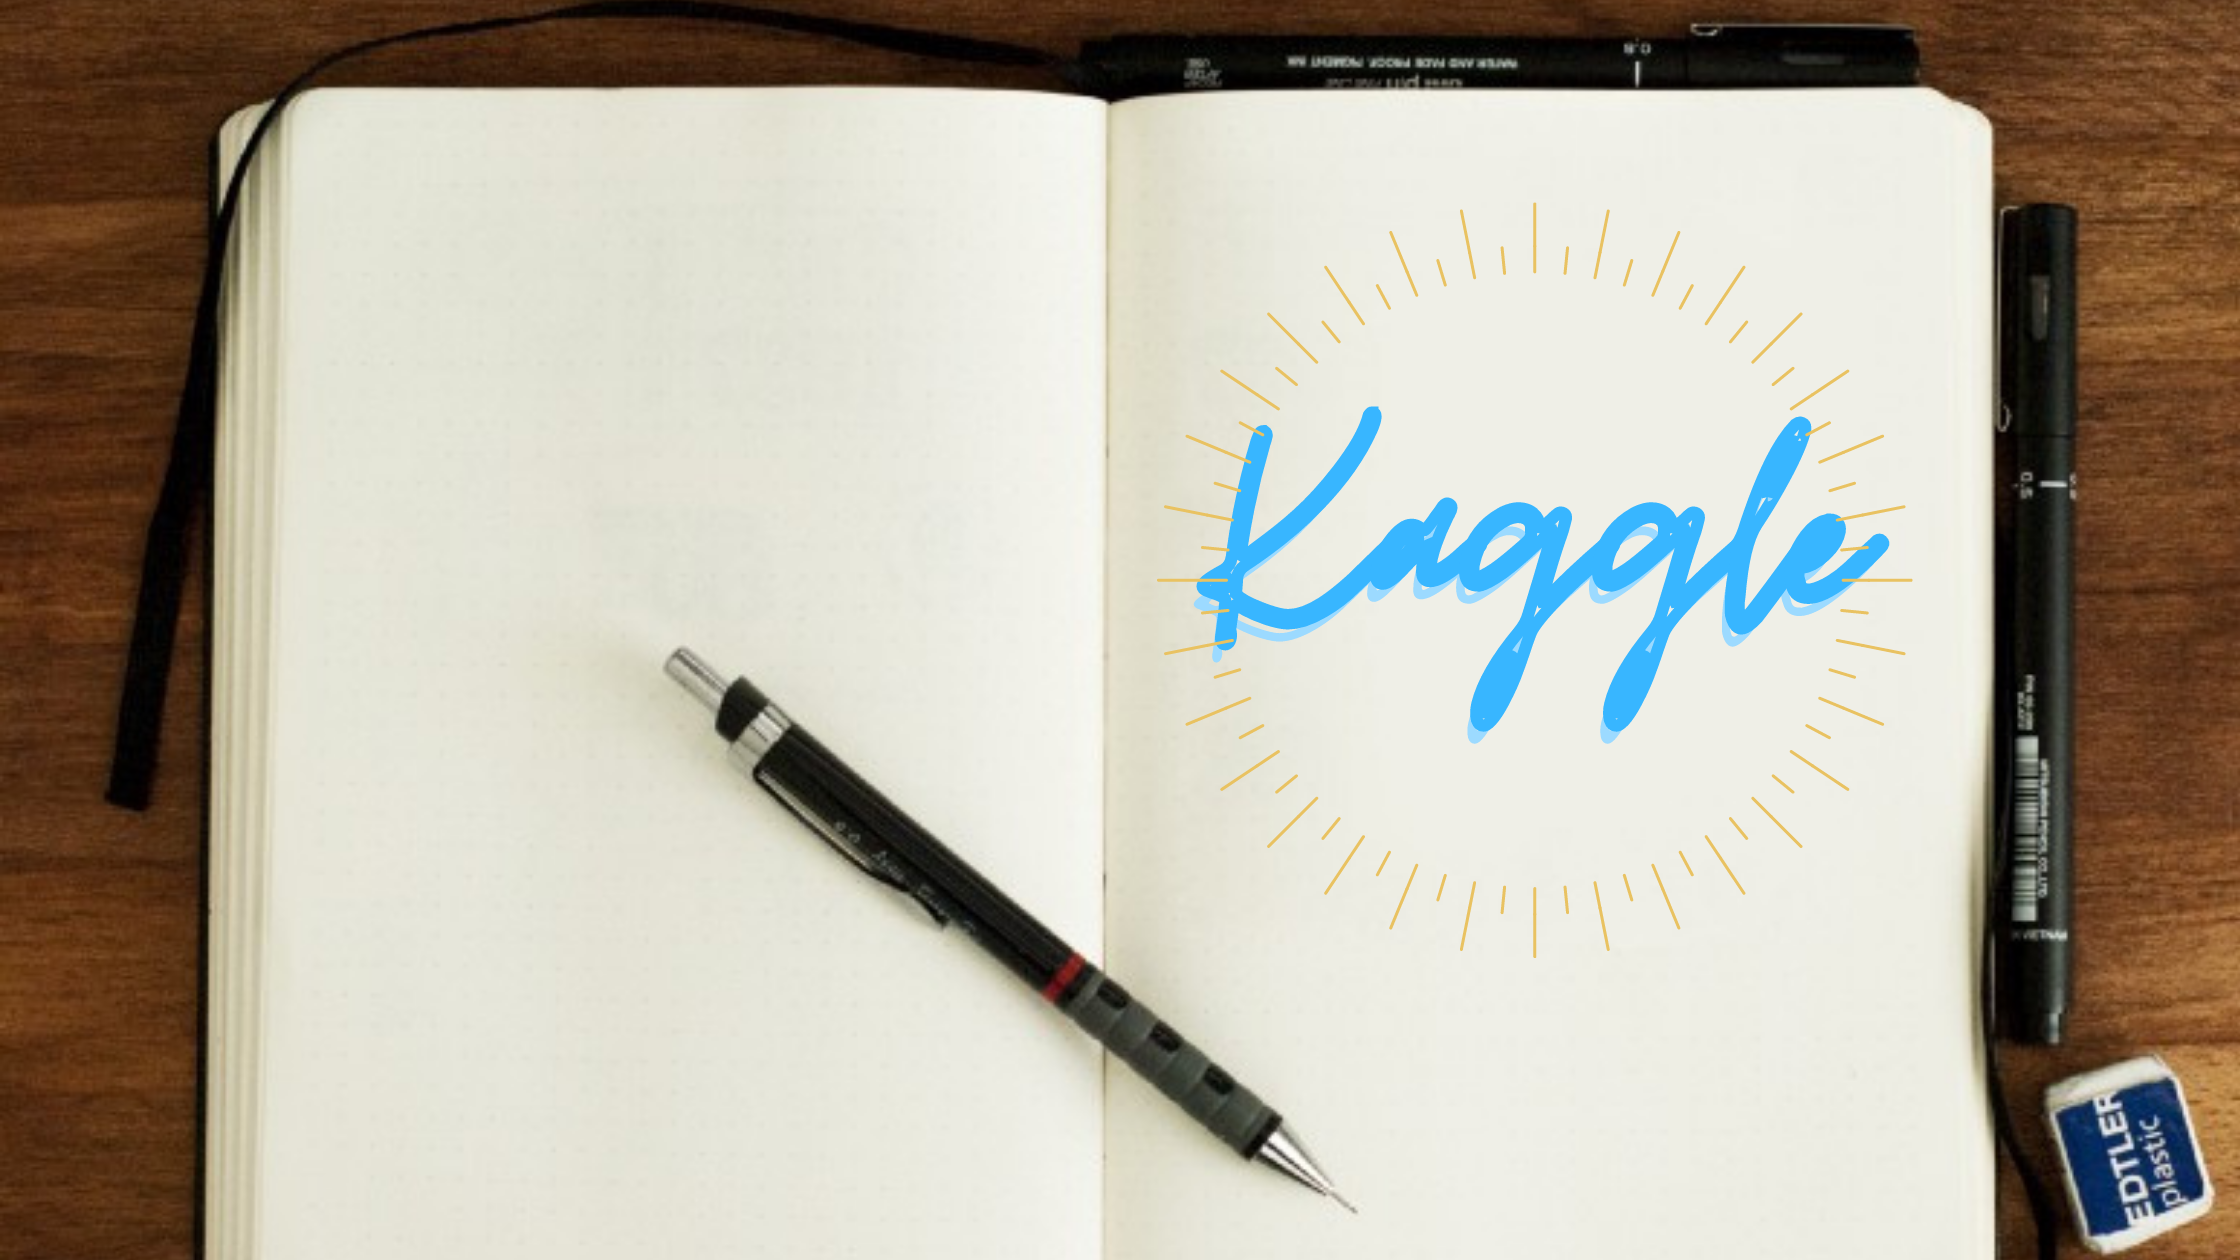 Getting 'More' out of your Kaggle Notebooks